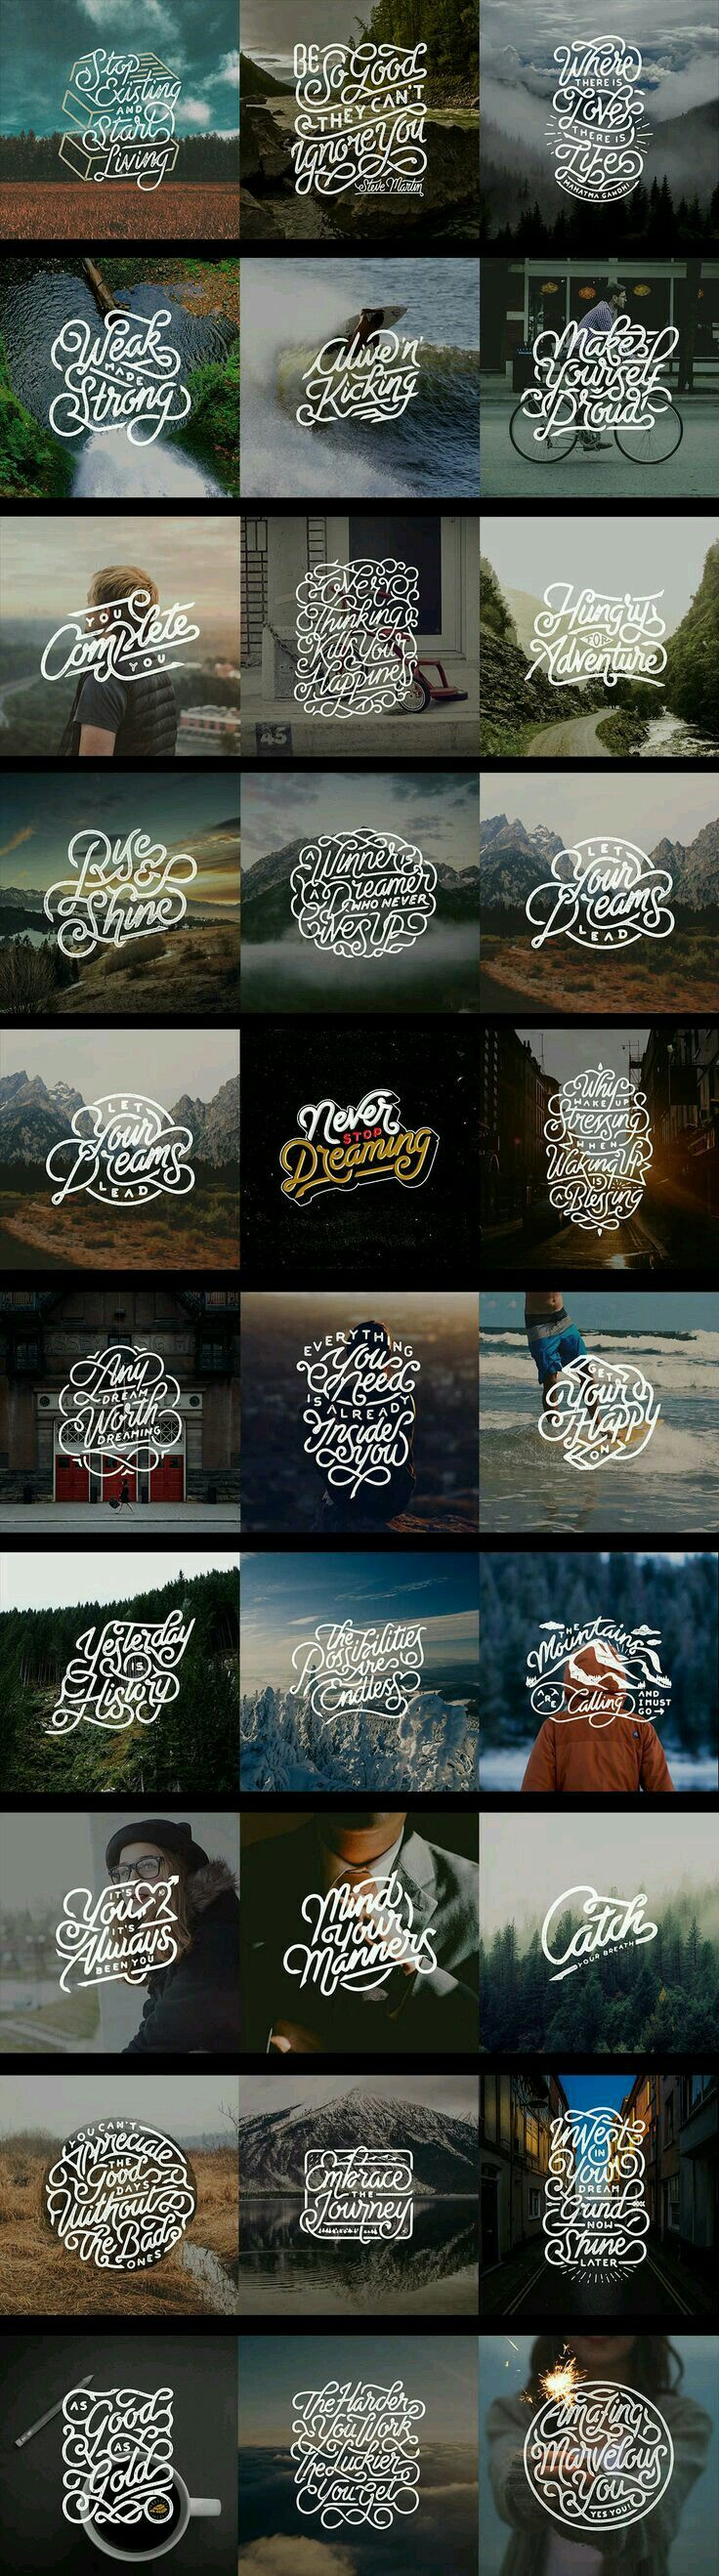 typography ideas #FredericClad